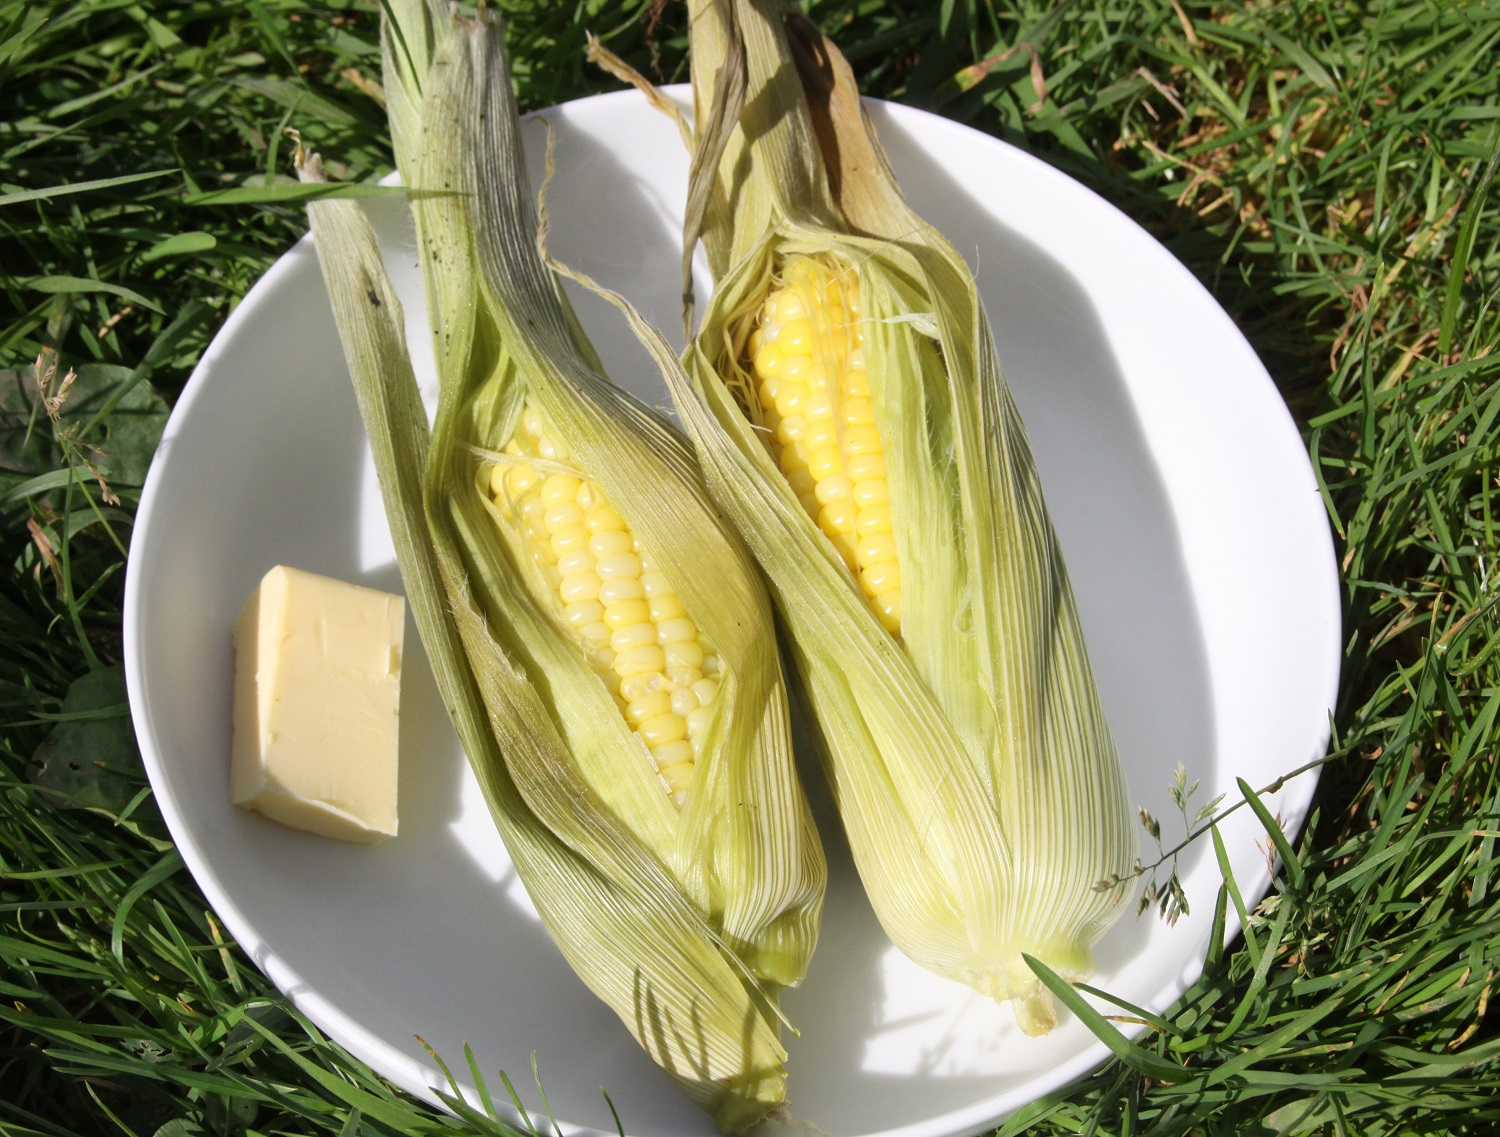 Picture of 'In the Leaf' Solar Cooked Sweetcorn